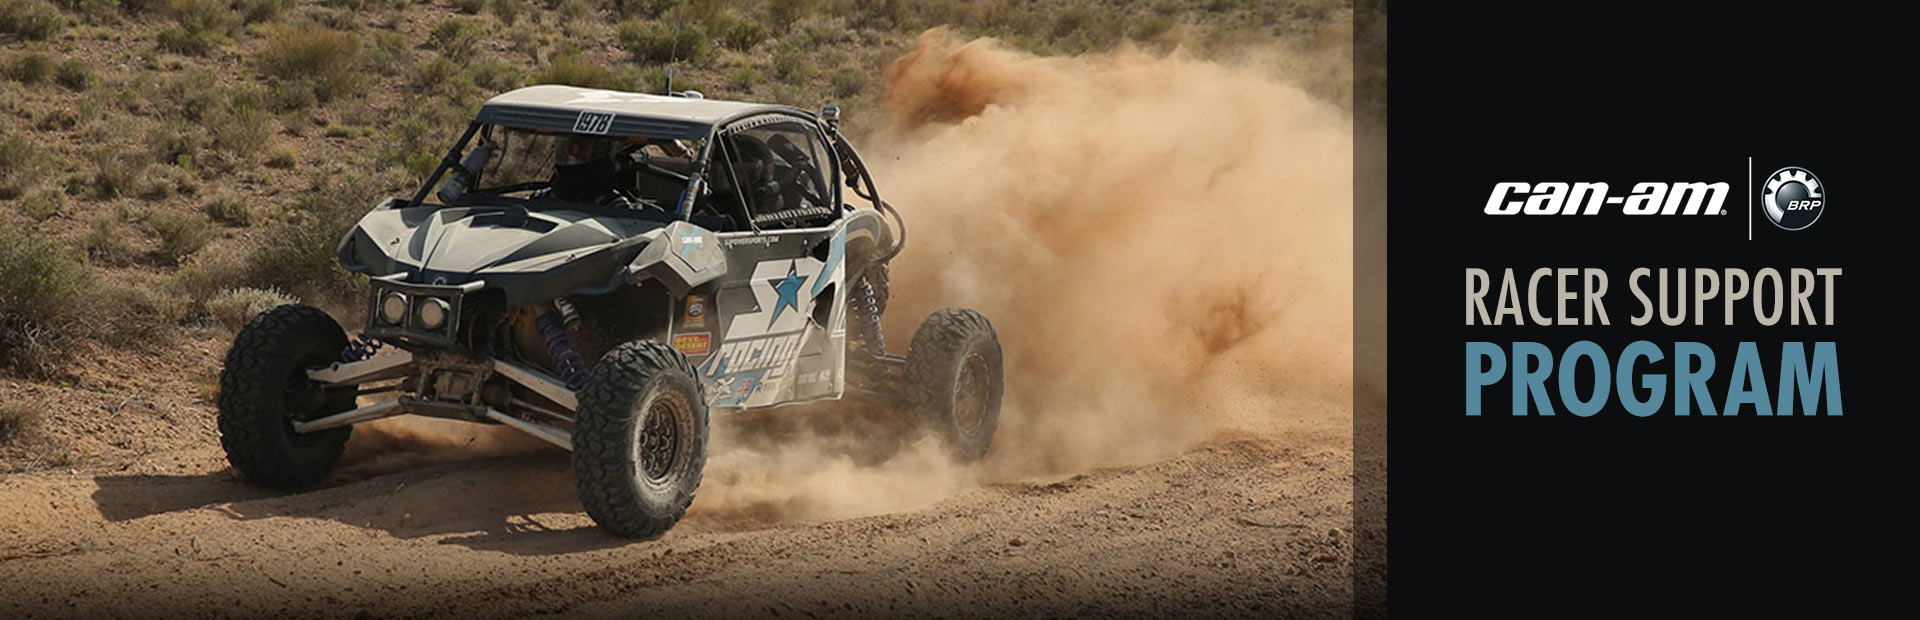 Can-Am: Can-Am Racer Support Program